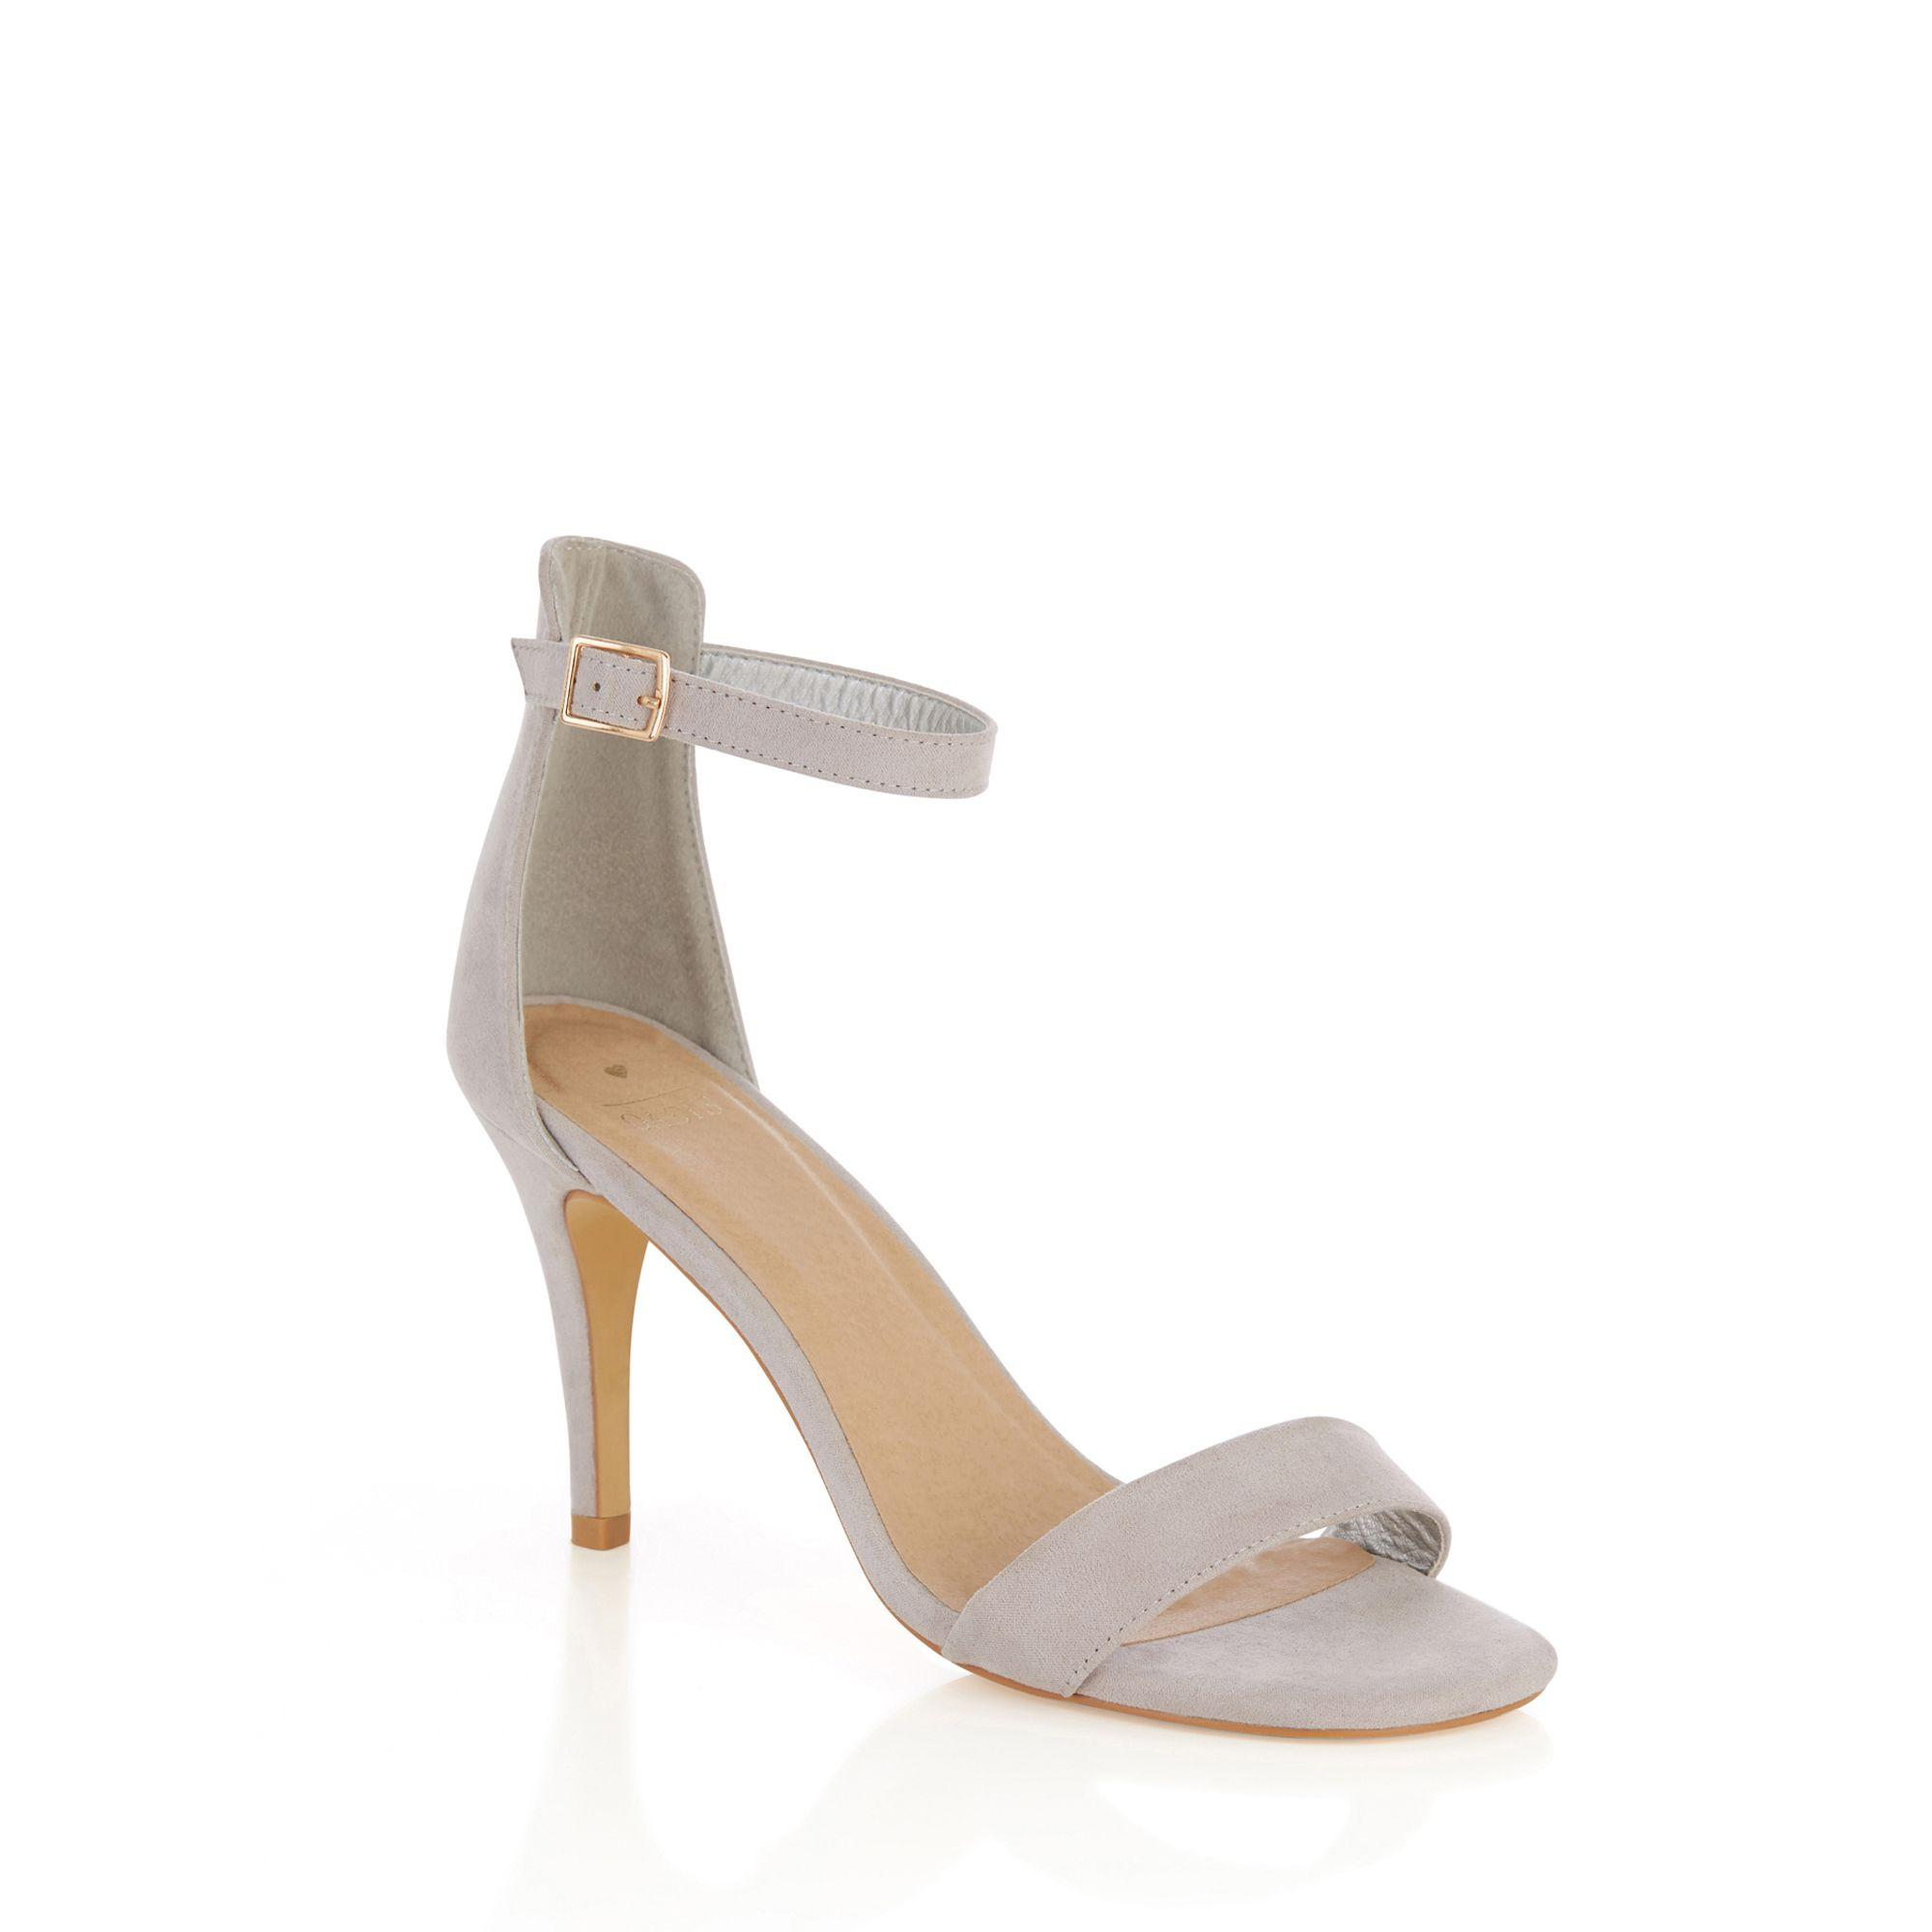 8d689f3ca32 Oasis Mid Grey  estella  Going Out Heels Sandal in Gray - Lyst